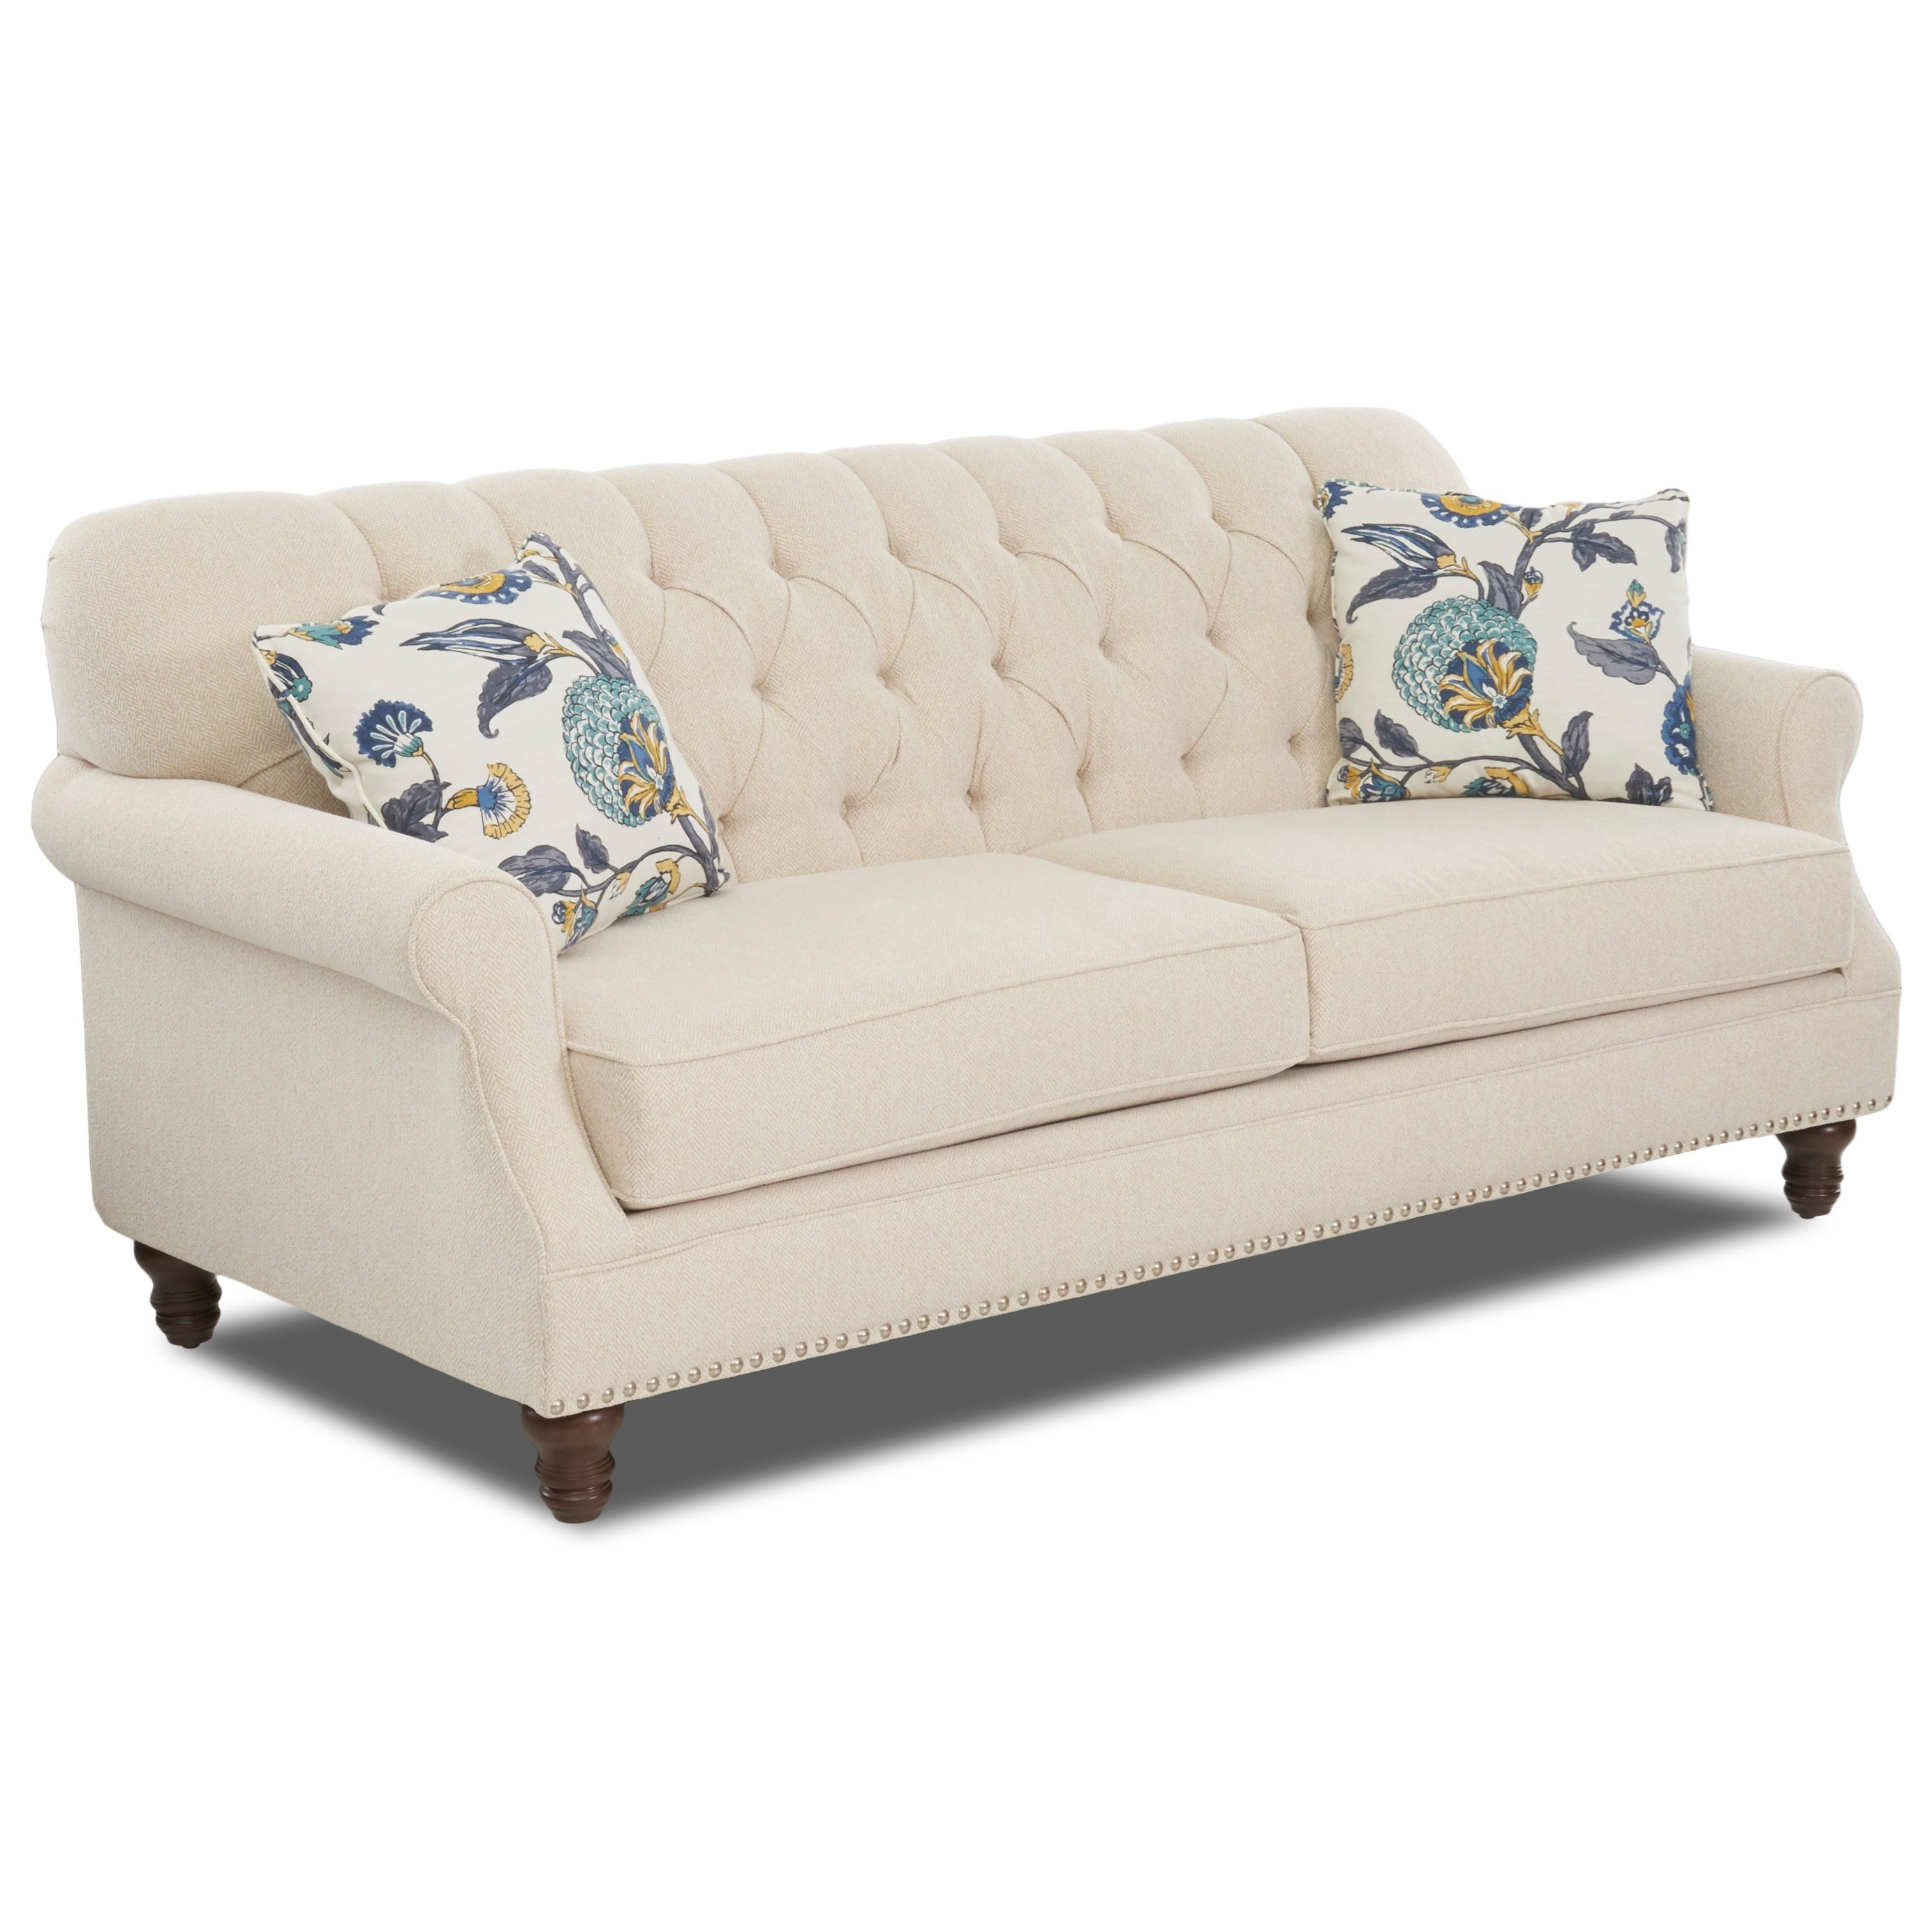 Traditional Tufted ApartmentSize Sofa with Nailheads by Klaussner  Wolf Furniture